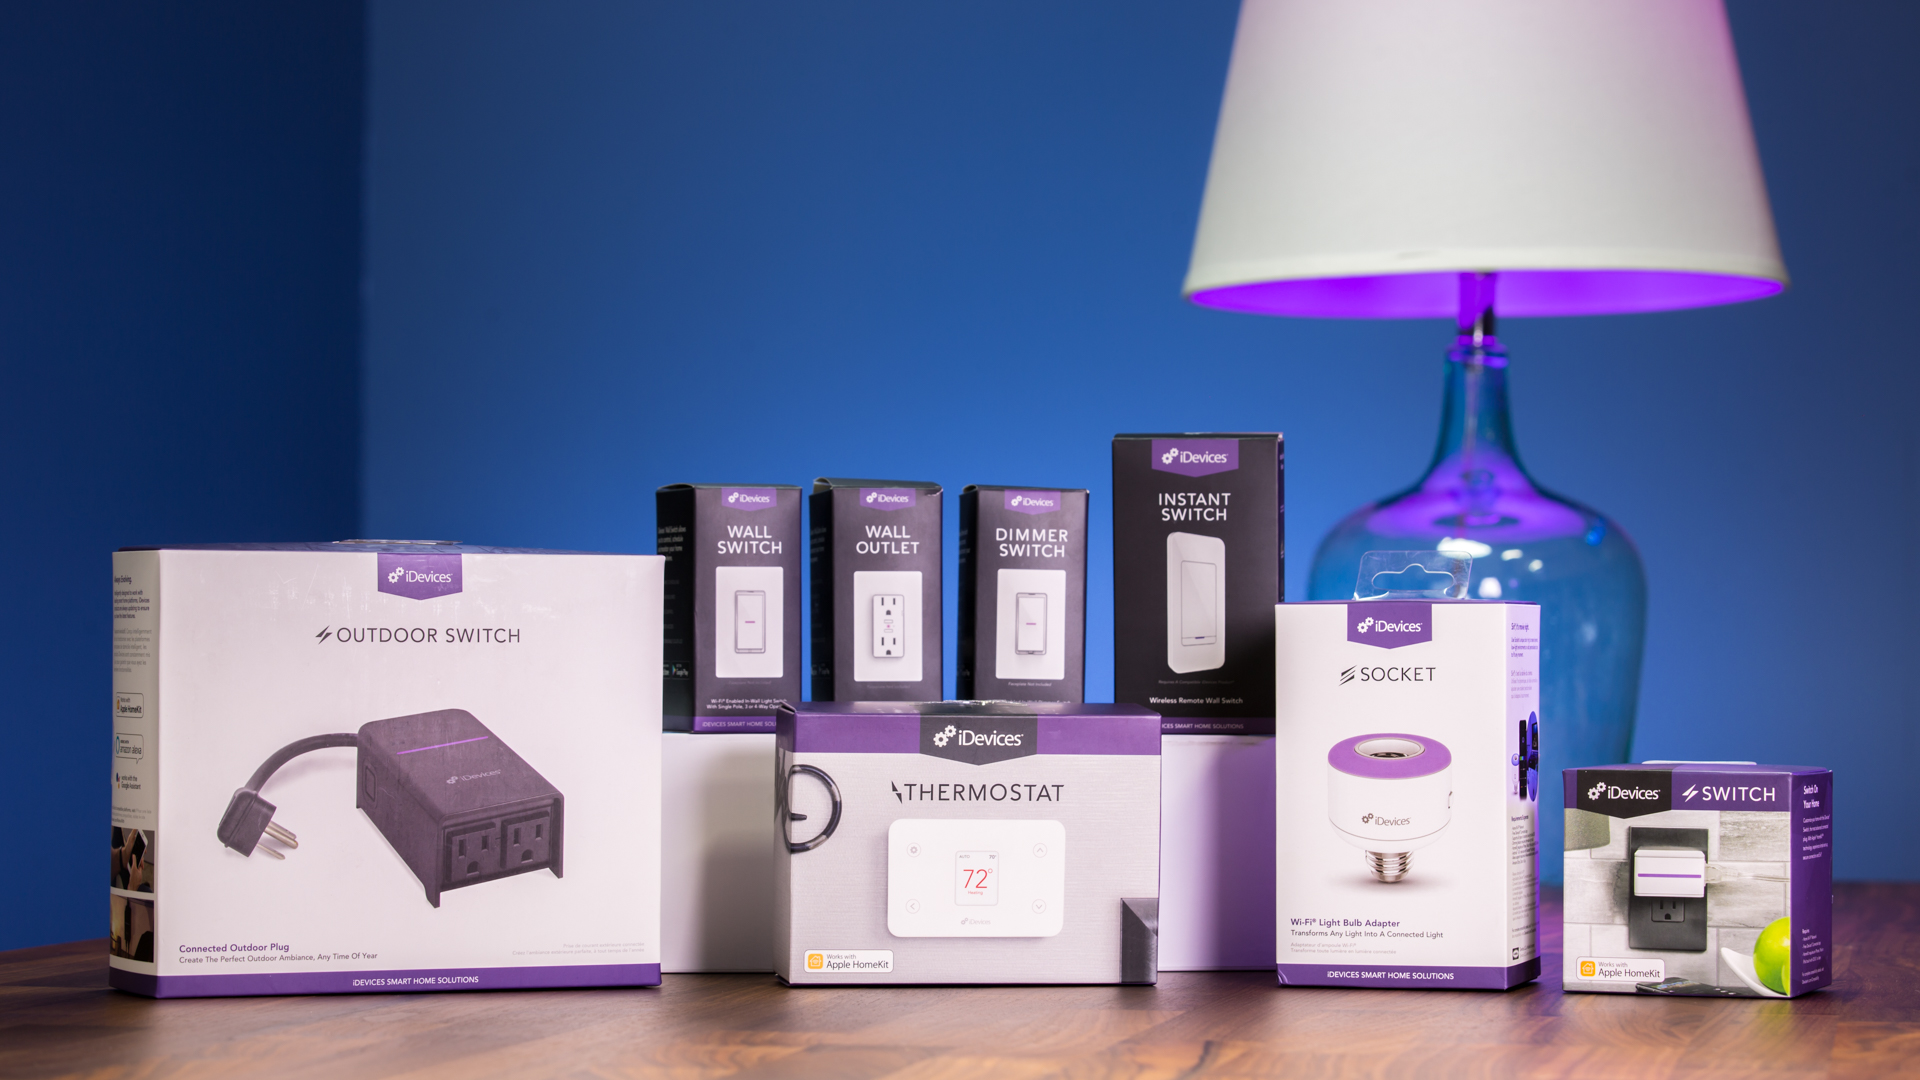 Light Automation The Idevices Smart Suite Is The Most Approachable Smart Home Kit Yet